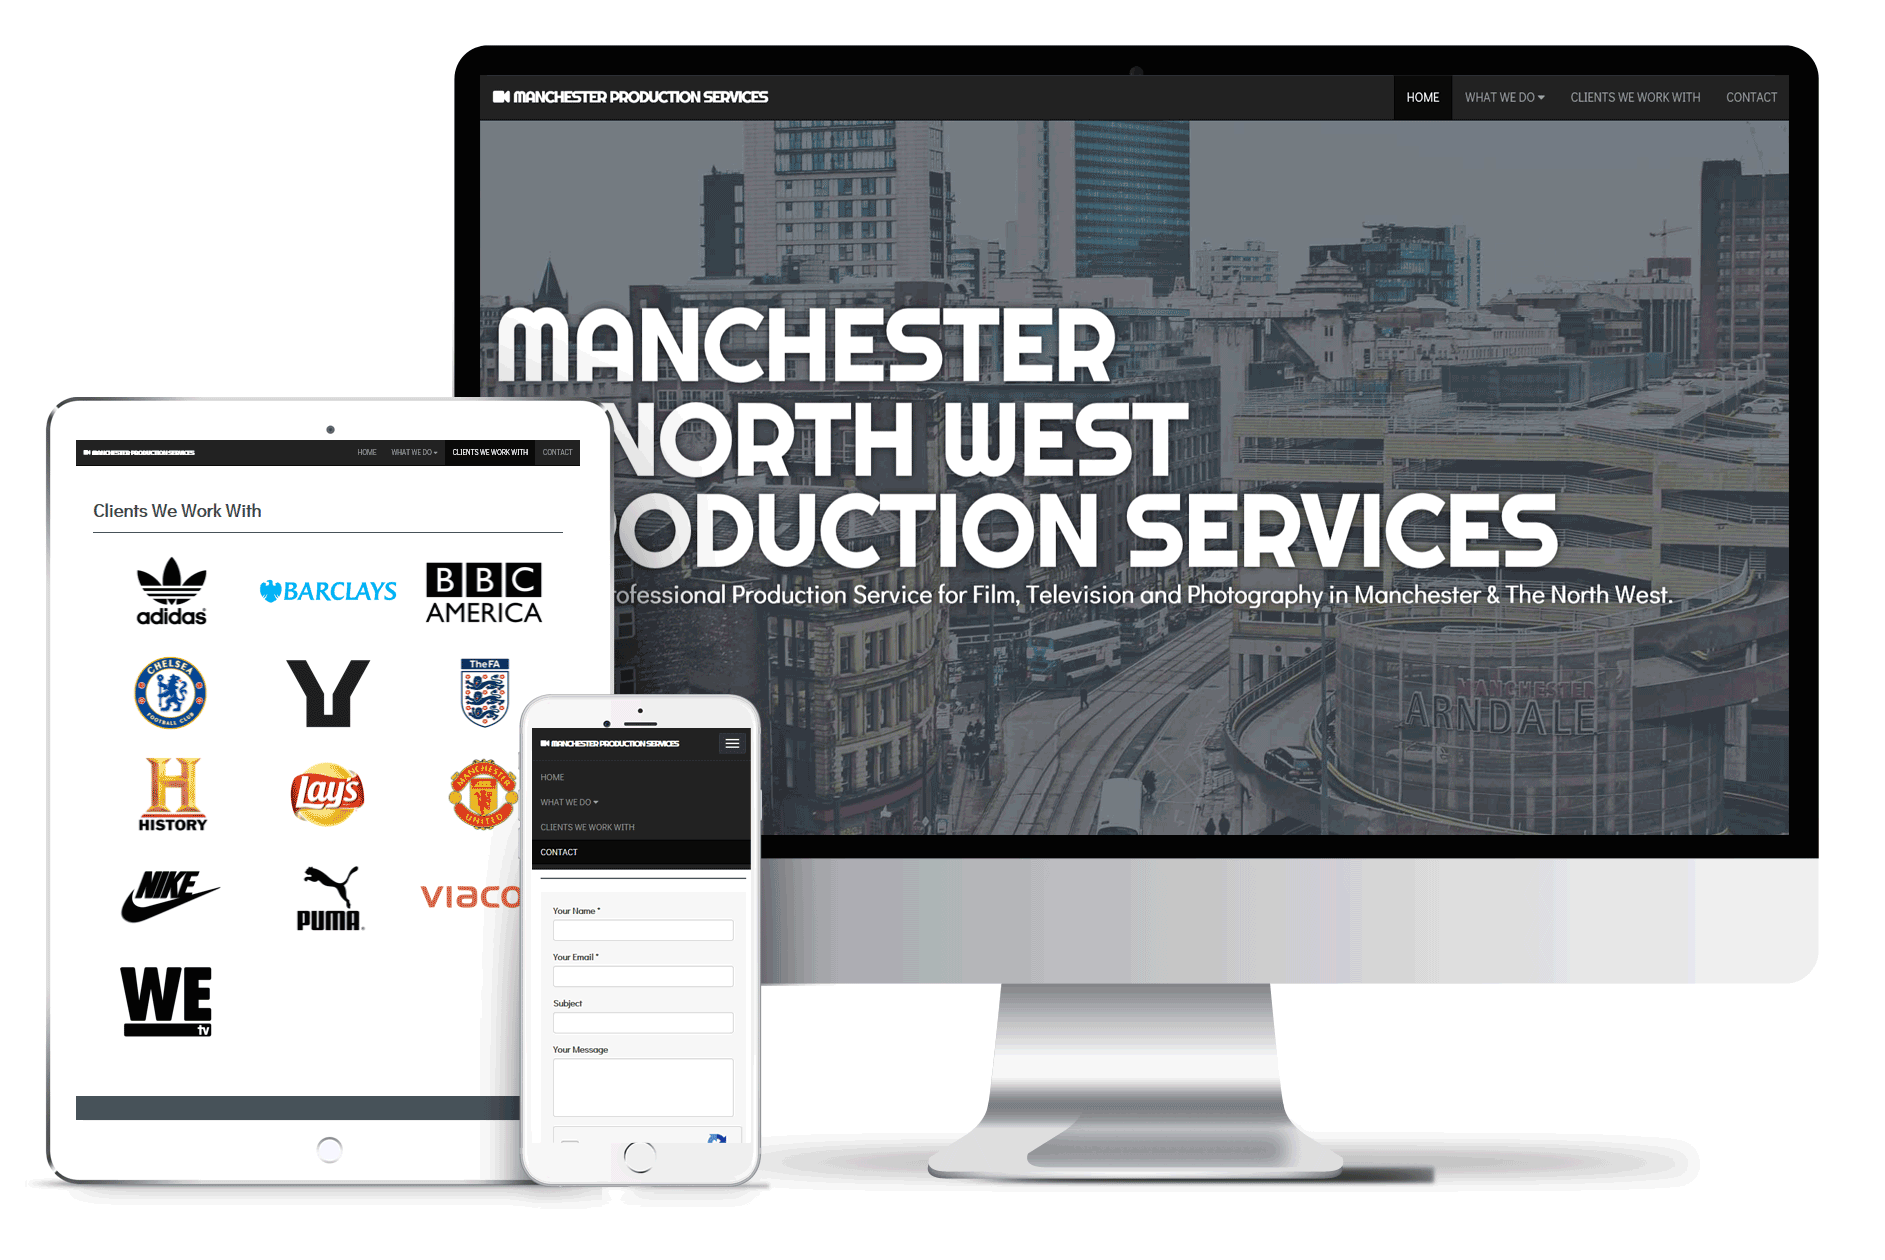 manchester production services mock up